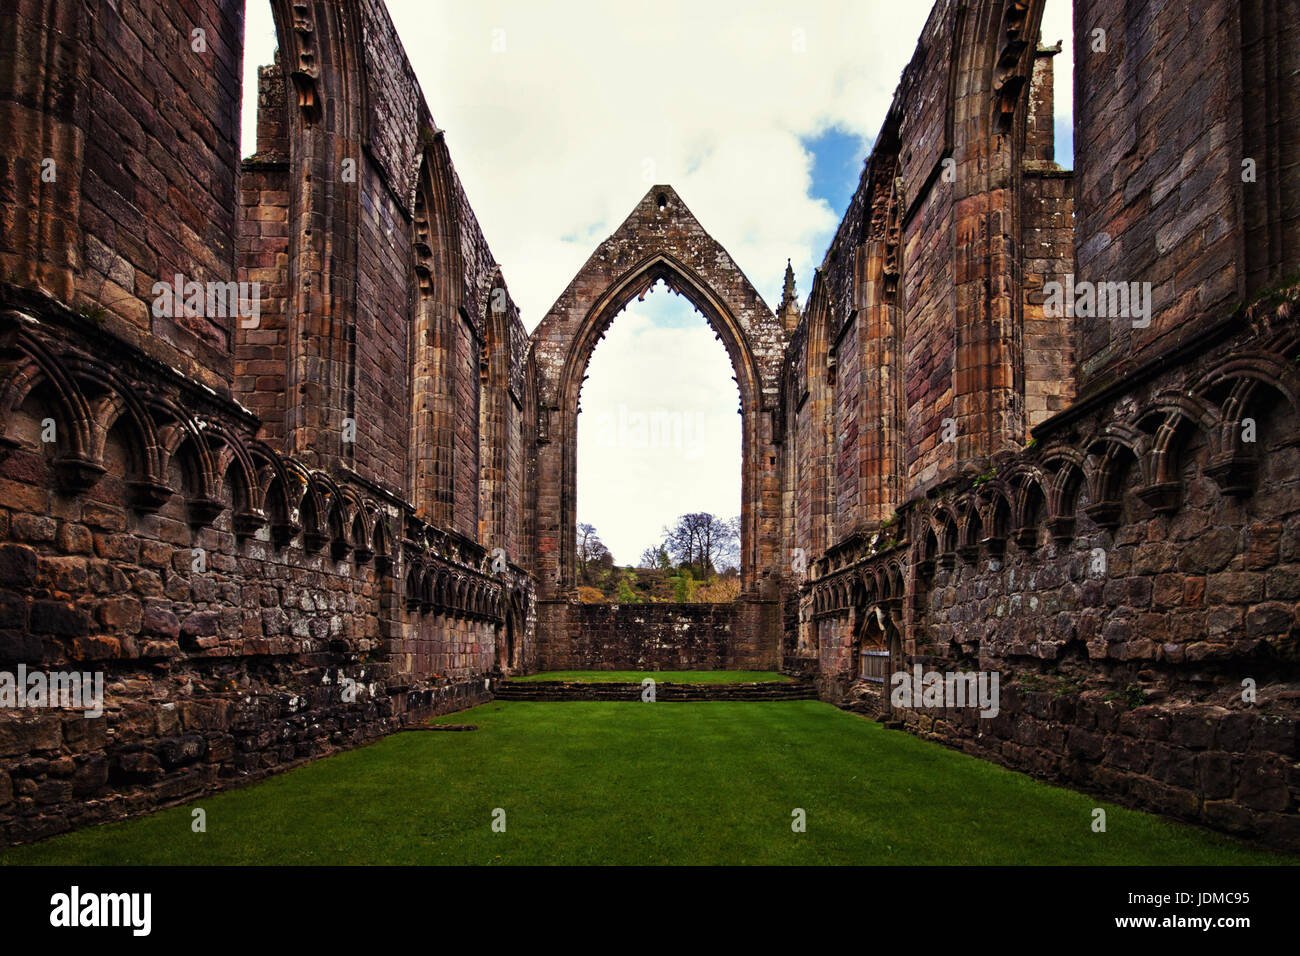 The lawned ruins in the central section of Bolton Abbey - Stock Image